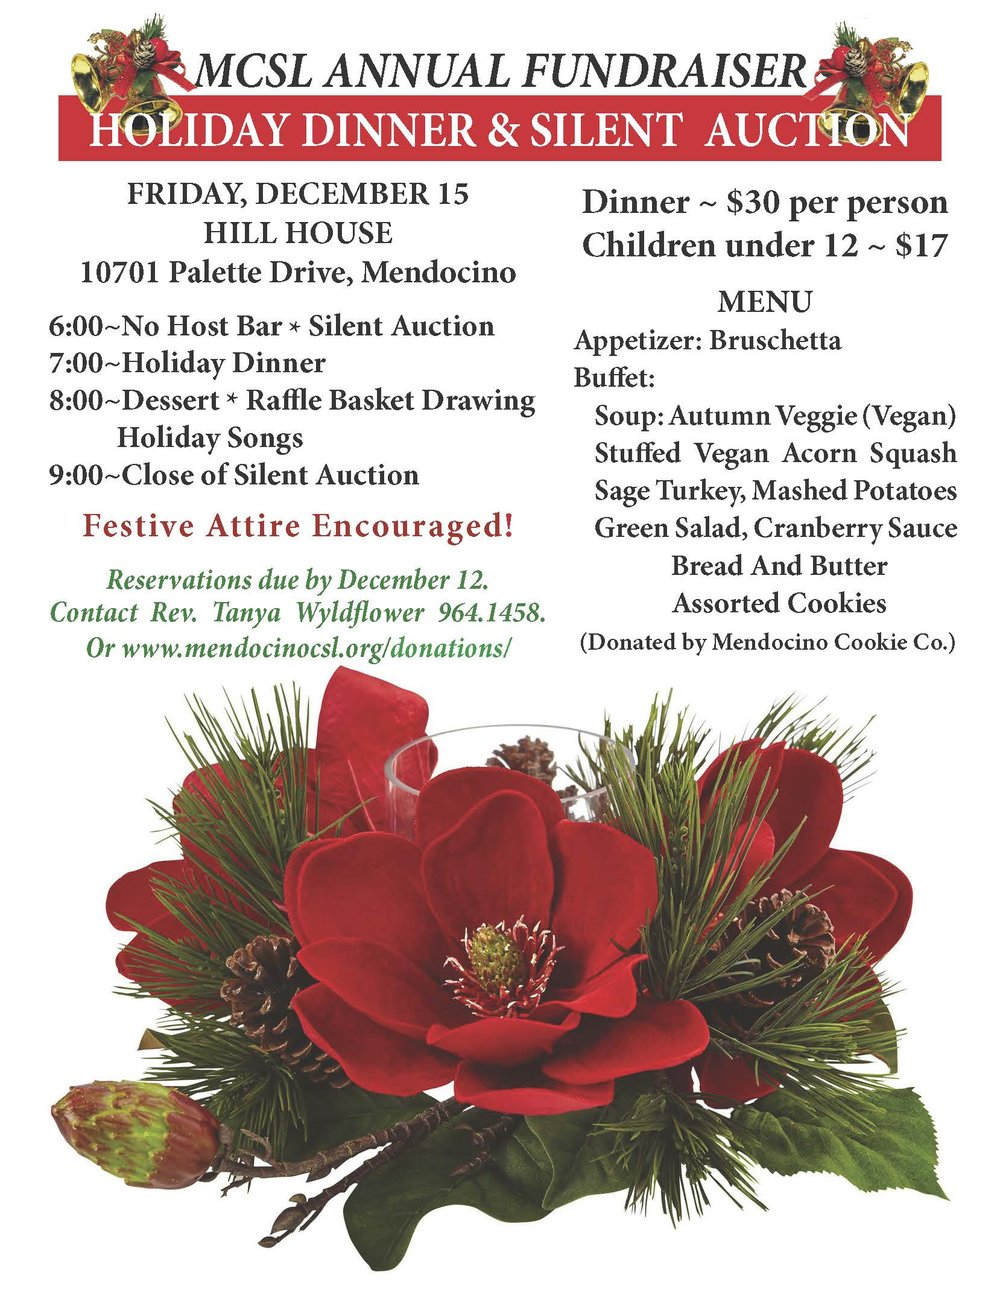 MCSL Holiday Dinner and Silent Auction.jpg